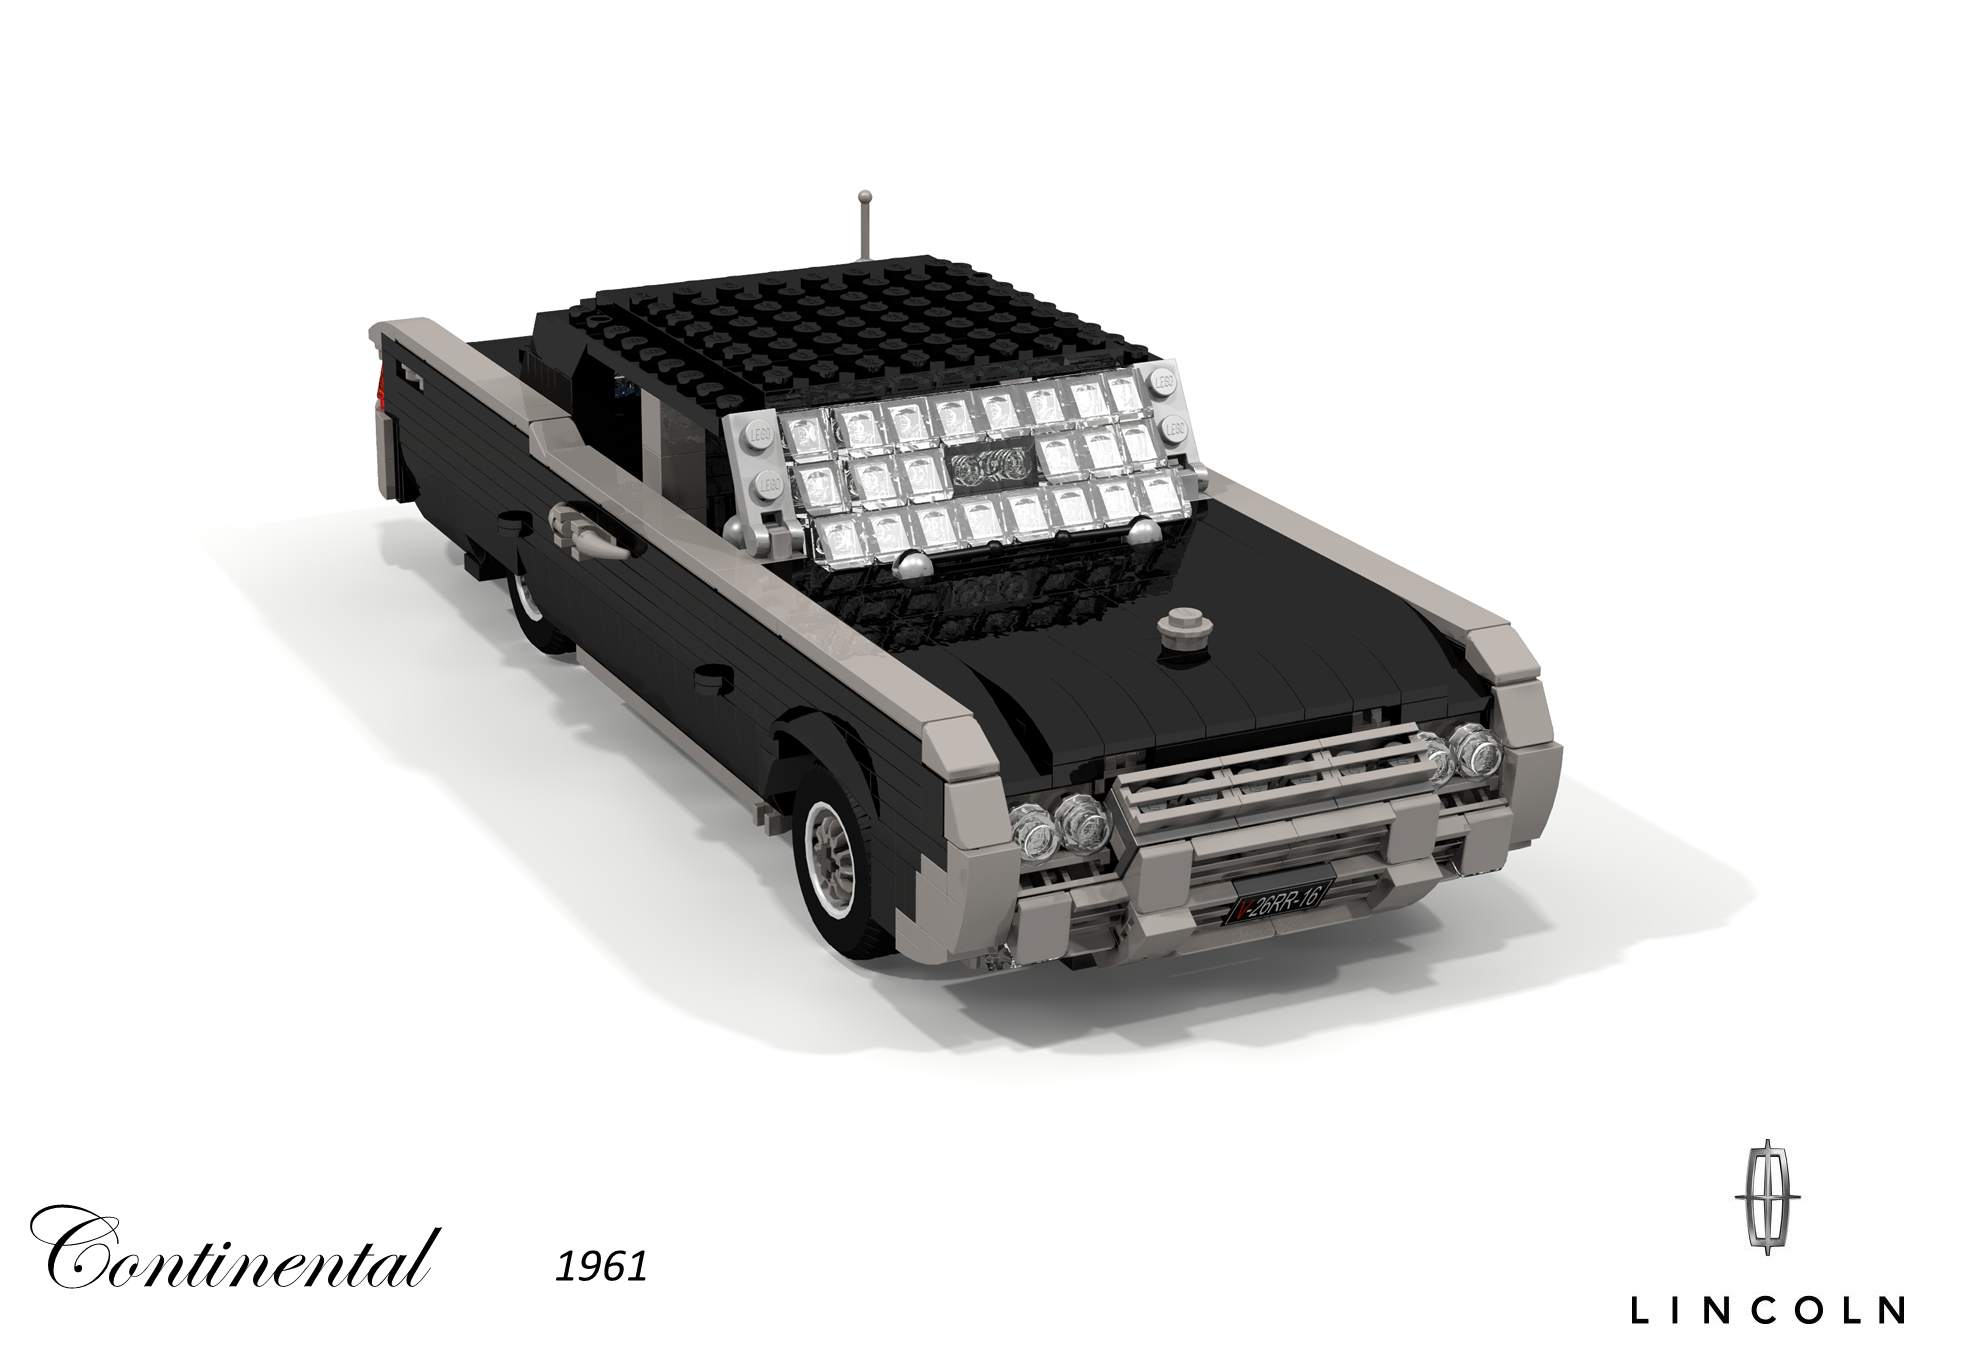 lincoln_1961_continental_01.png